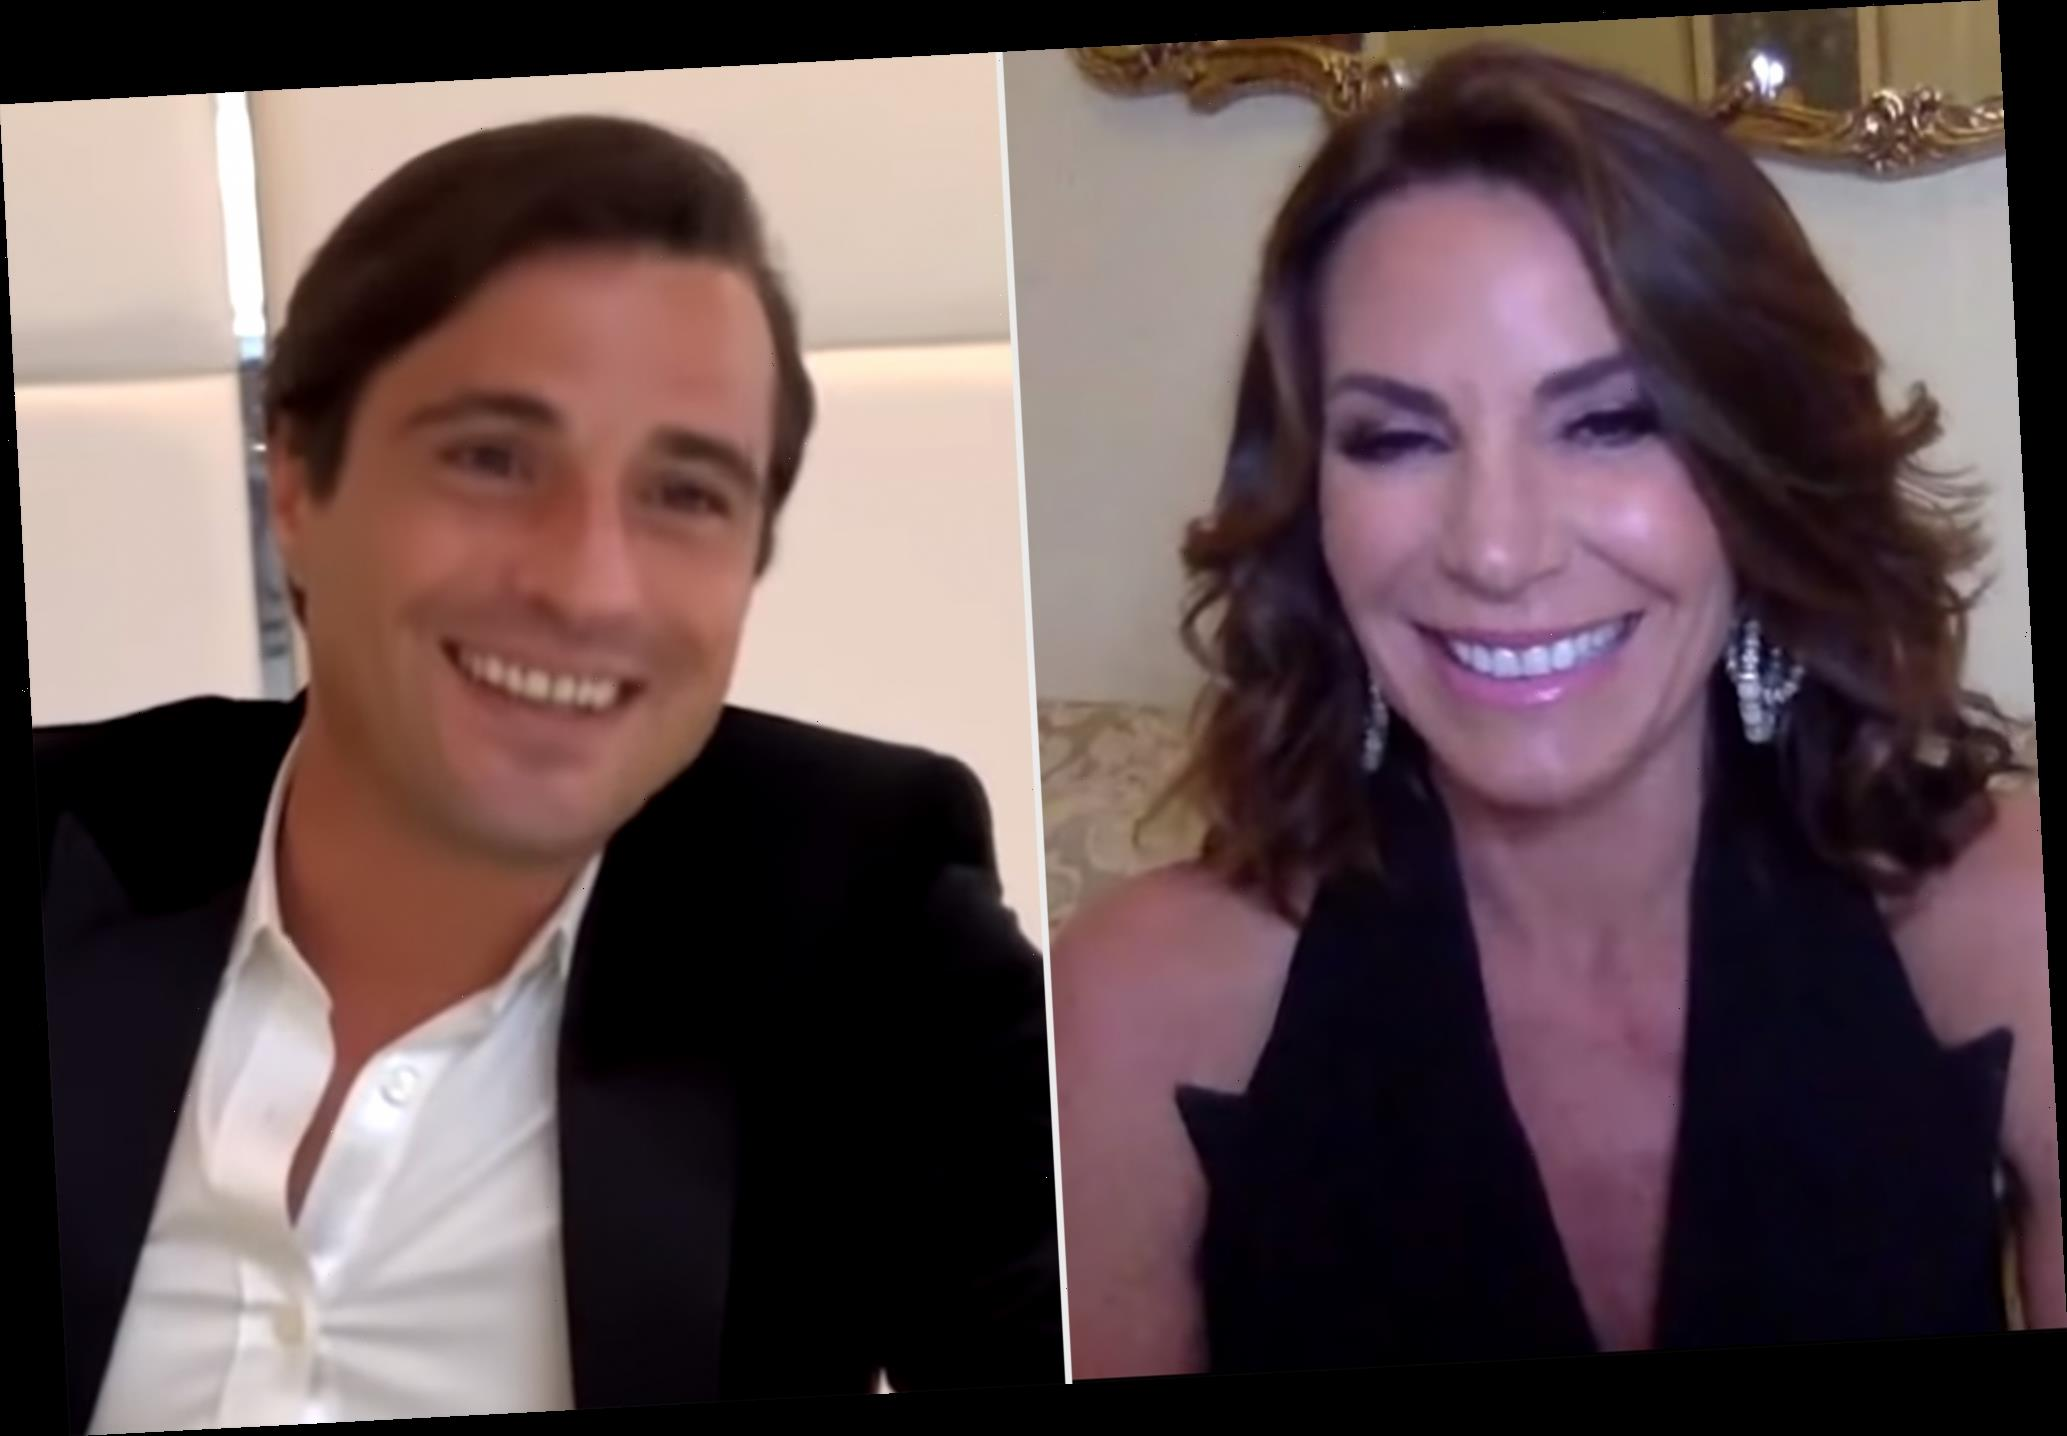 RHONY: Luann de Lesseps Reunites with Infamous 'Pirate' from St. Barths — But Did They Hook Up?